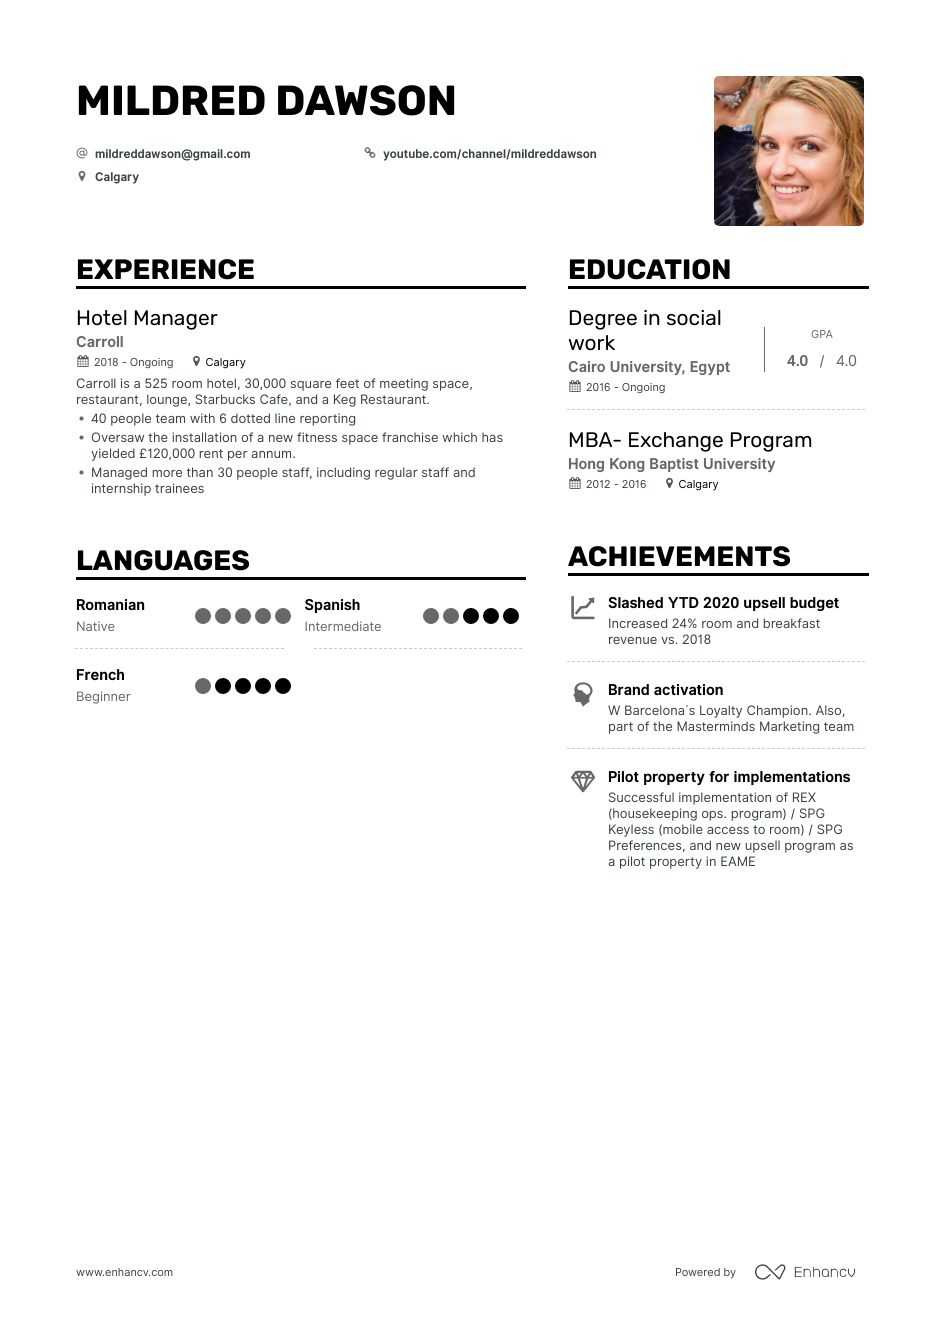 Top Hotel Manager Resume Examples & Samples for 2020